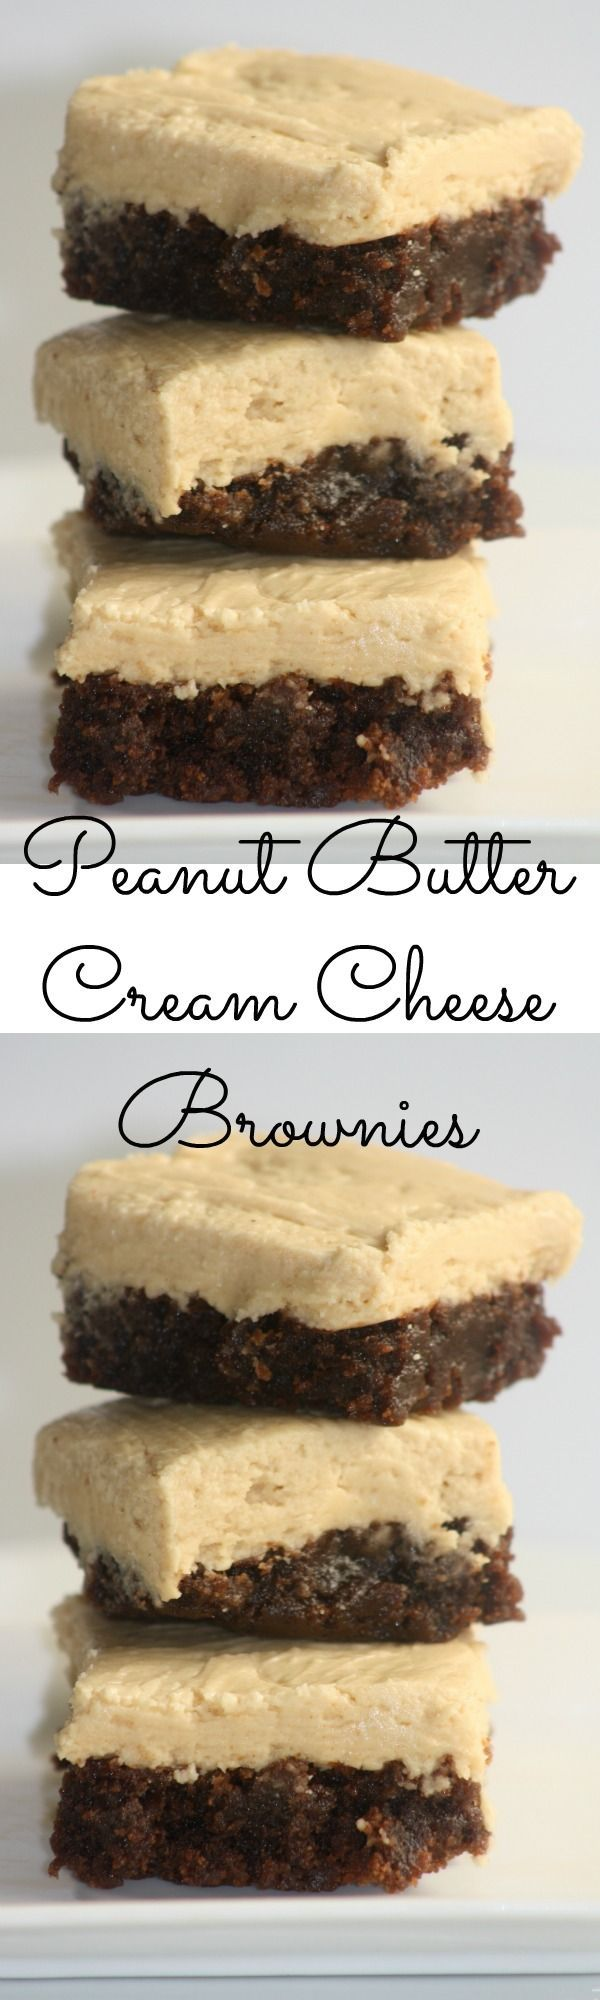 Peanut Butter Cream Cheese Brownies - These brownies are delicious and so easy to make!  |  http://www.sincerelyjean.com